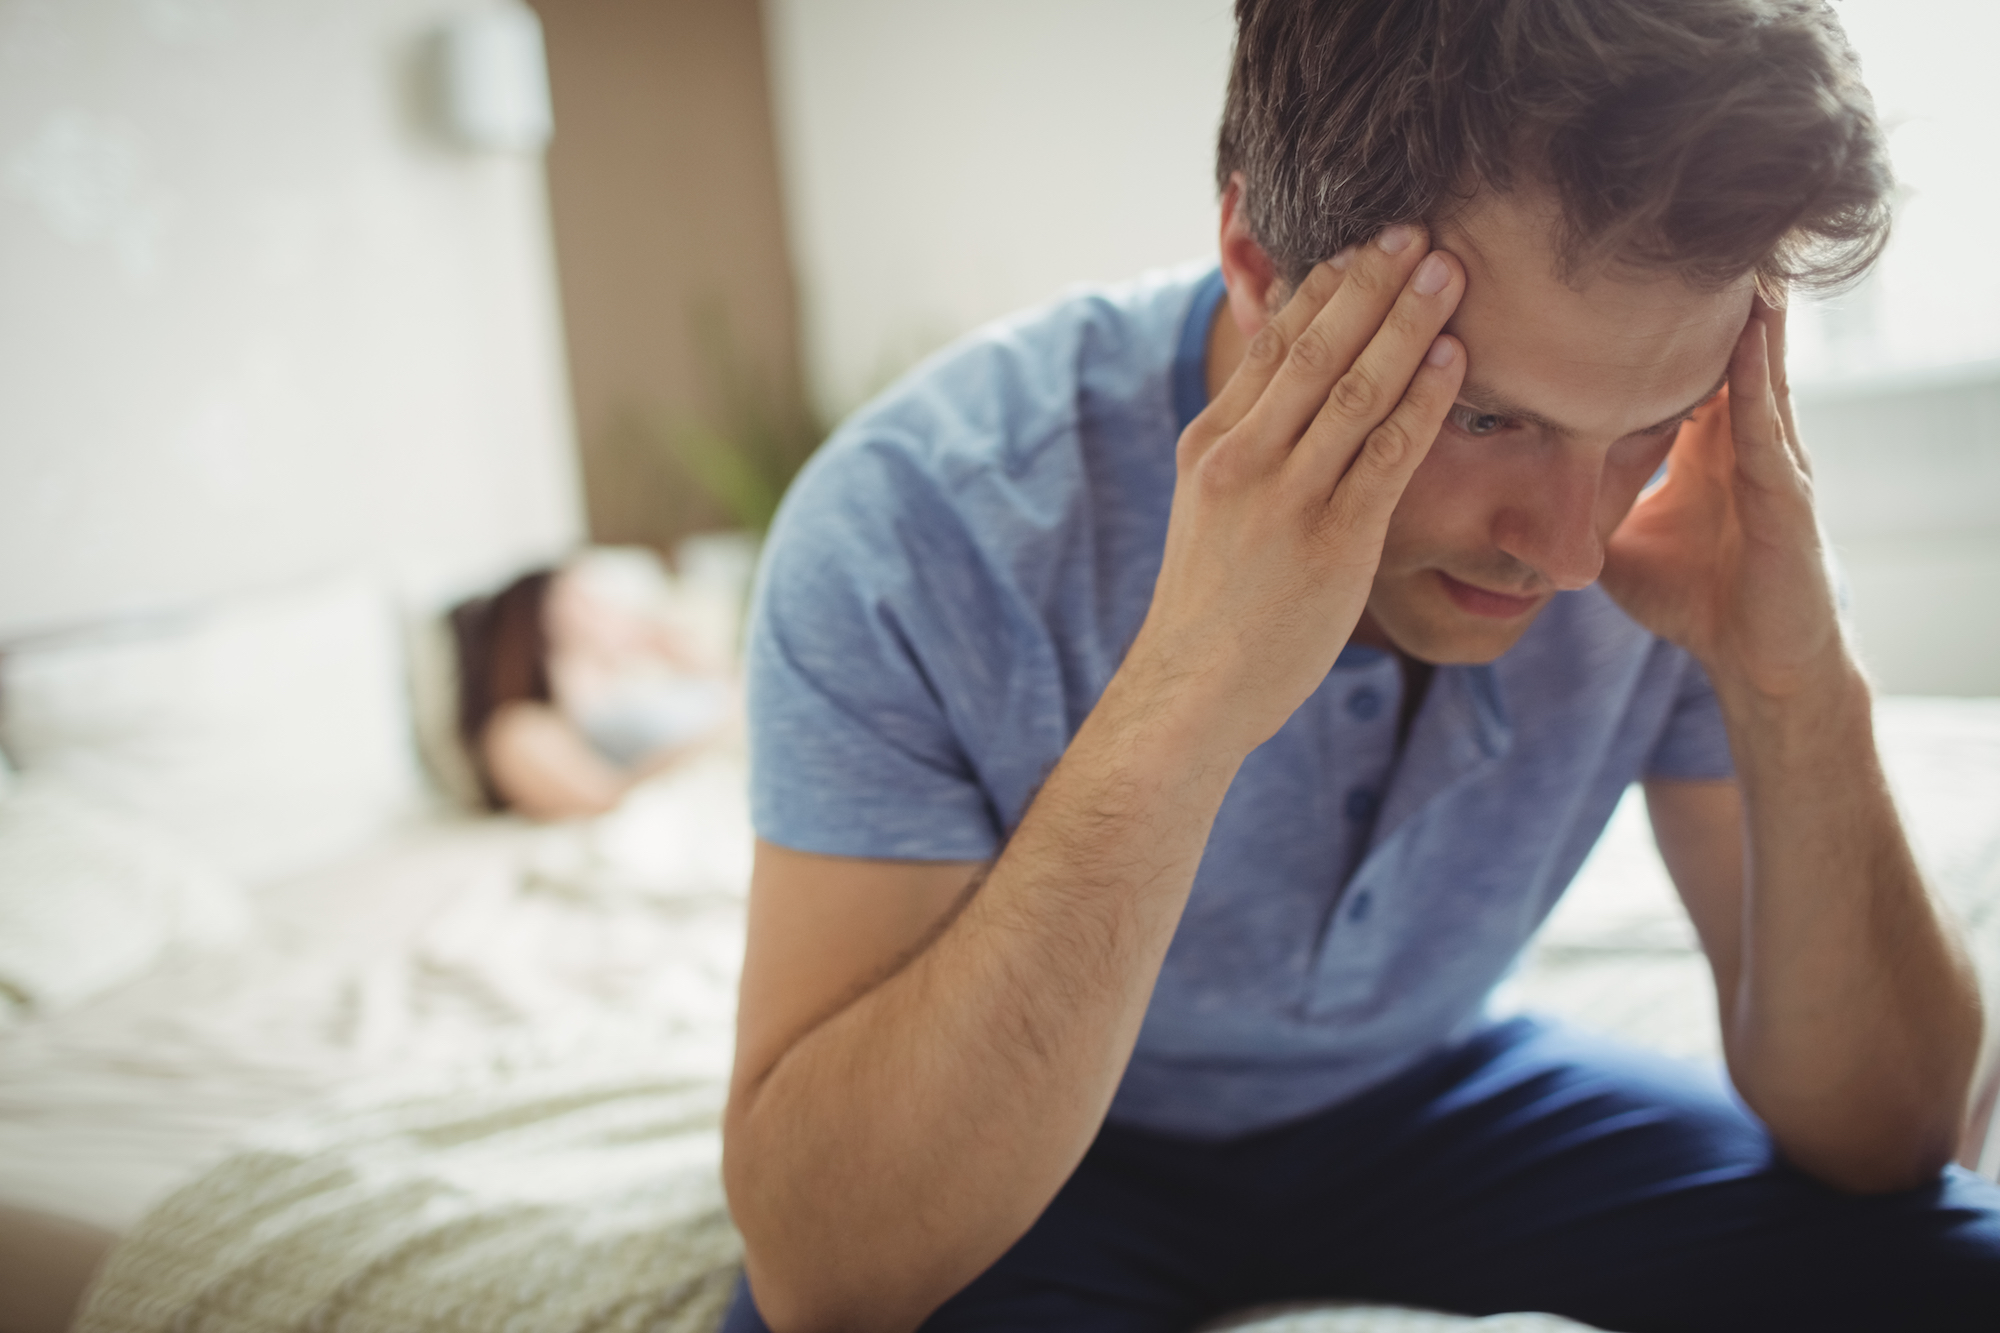 Man sitting at edge of bed upset with head in hands